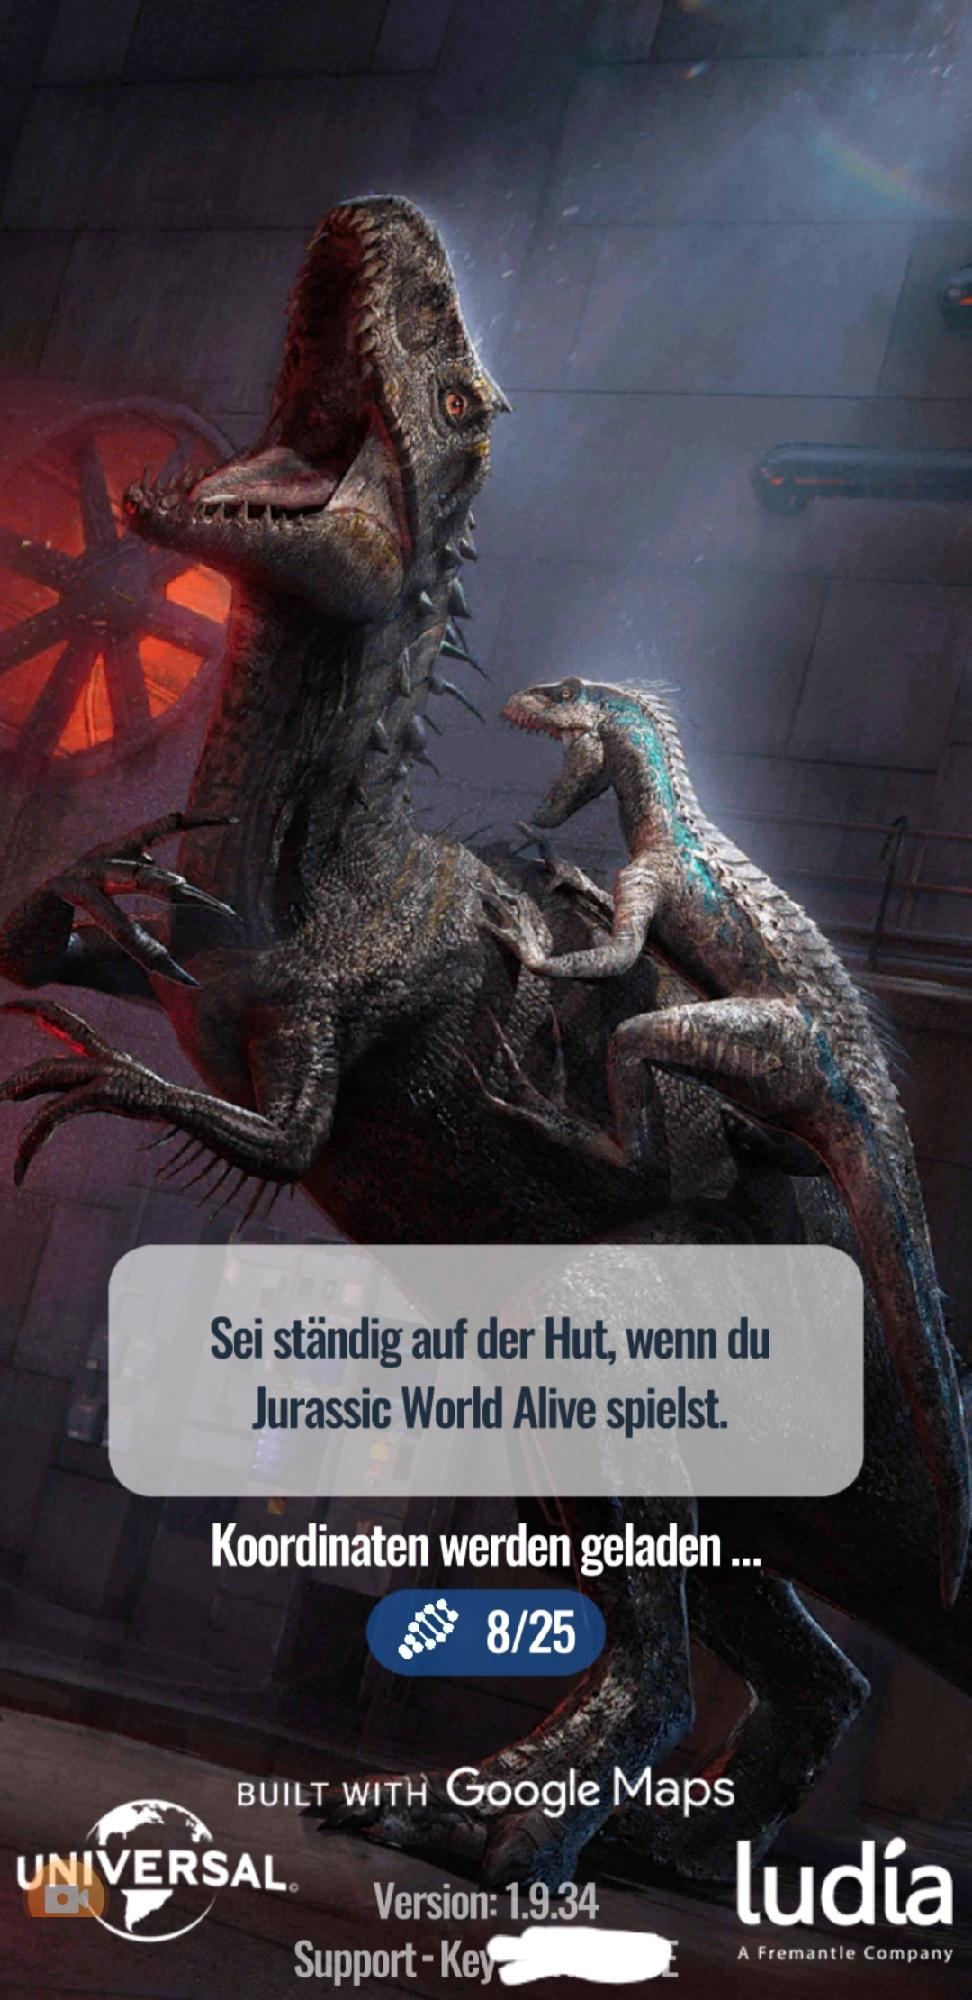 Jurassic world alive